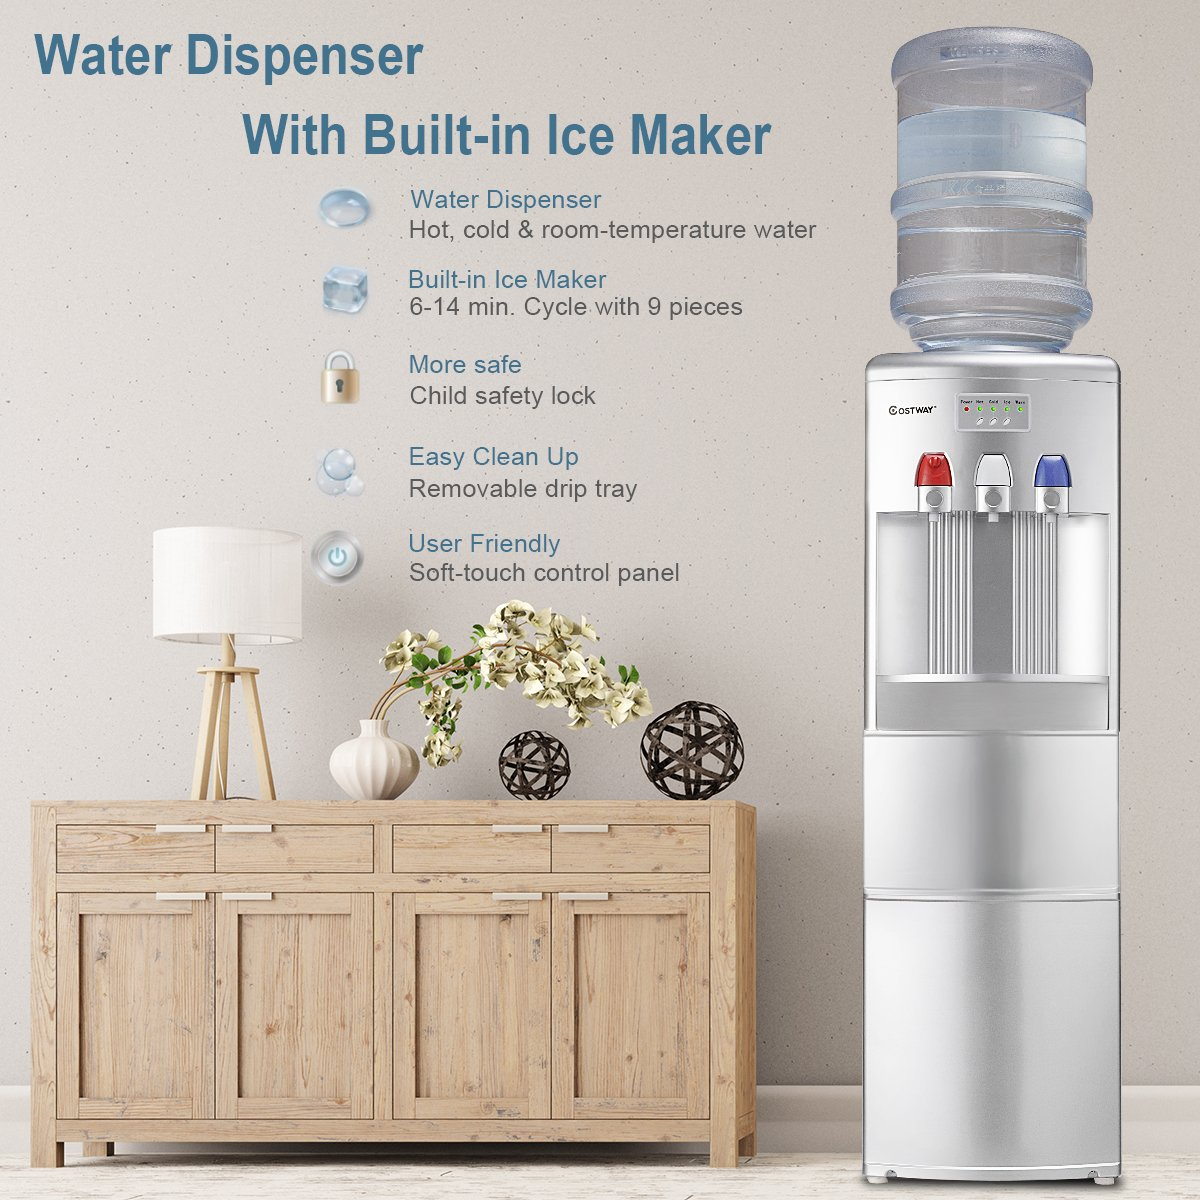 Costway 2-in-1 Water Cooler Dispenser with Built-in Ice Maker Freestanding Hot Cold Top Loading Water Dispenser 27LB/24H Ice Machine with Child Safety Lock, Silver by COSTWAY (Image #2)